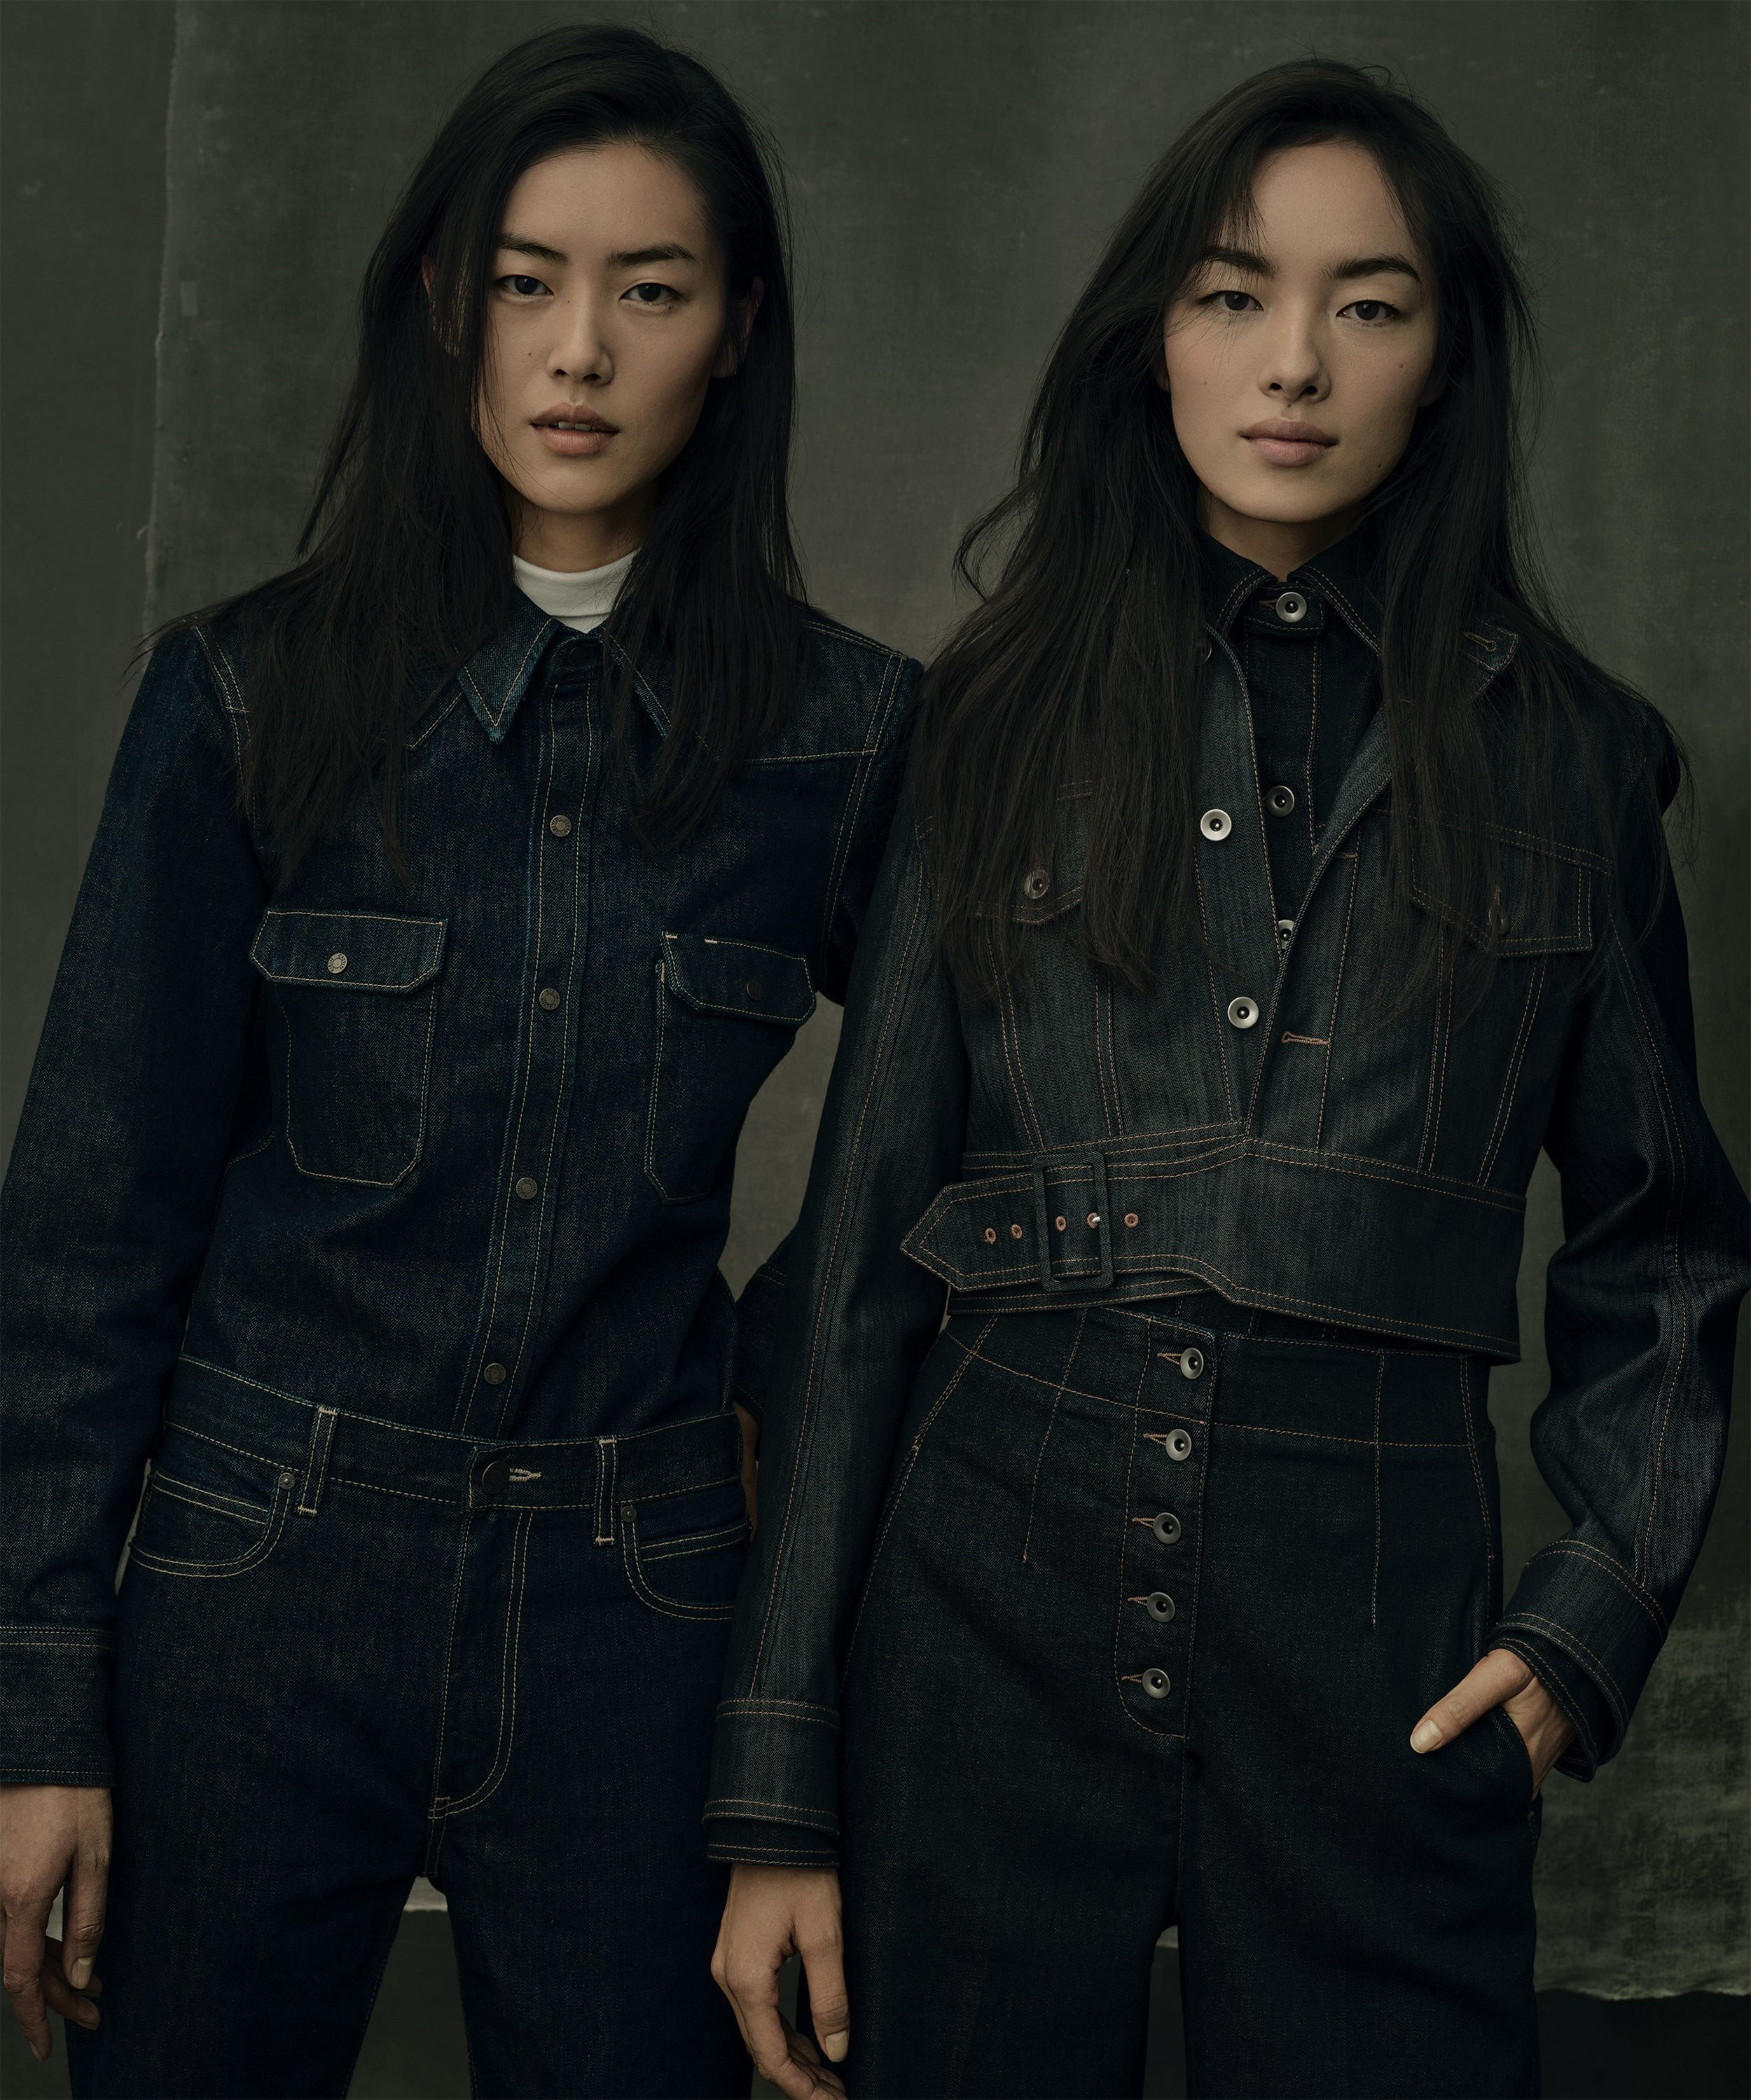 08-supermodels-denim-vogue-september-2017.jpg